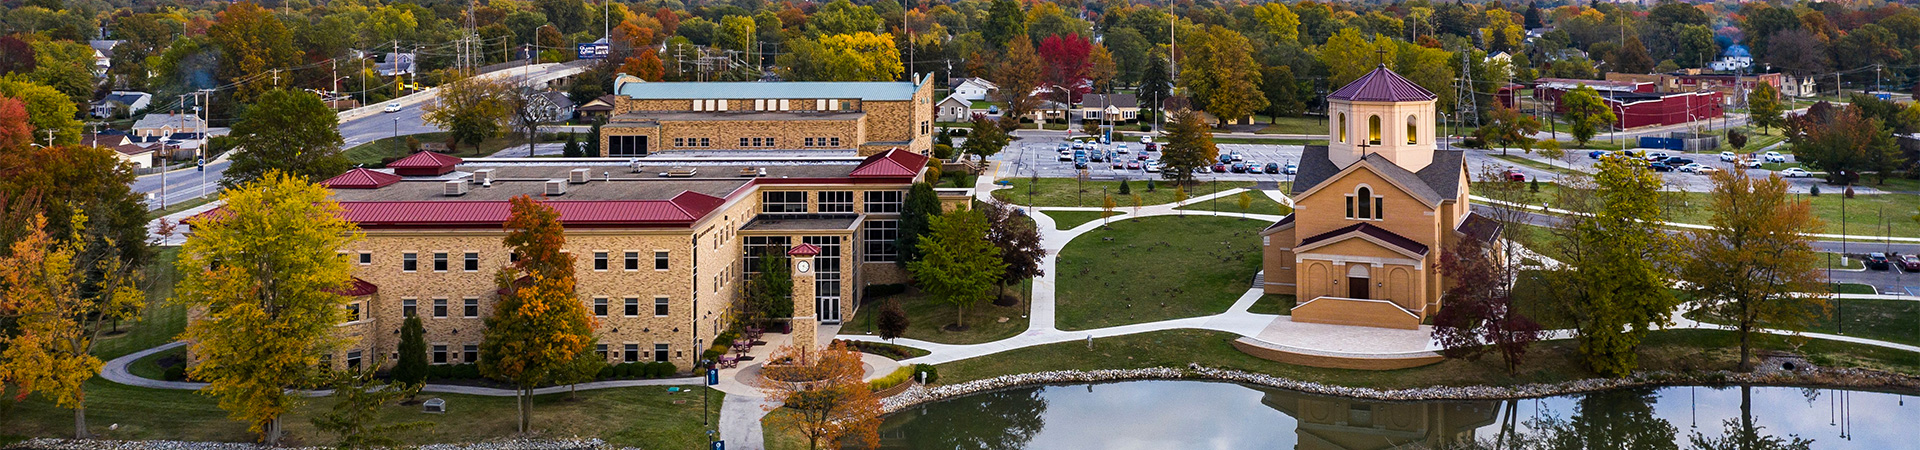 Aerial photo of the Pope John Paul II Center and the St. Francis Chapel taken at sunset on a warm fall day